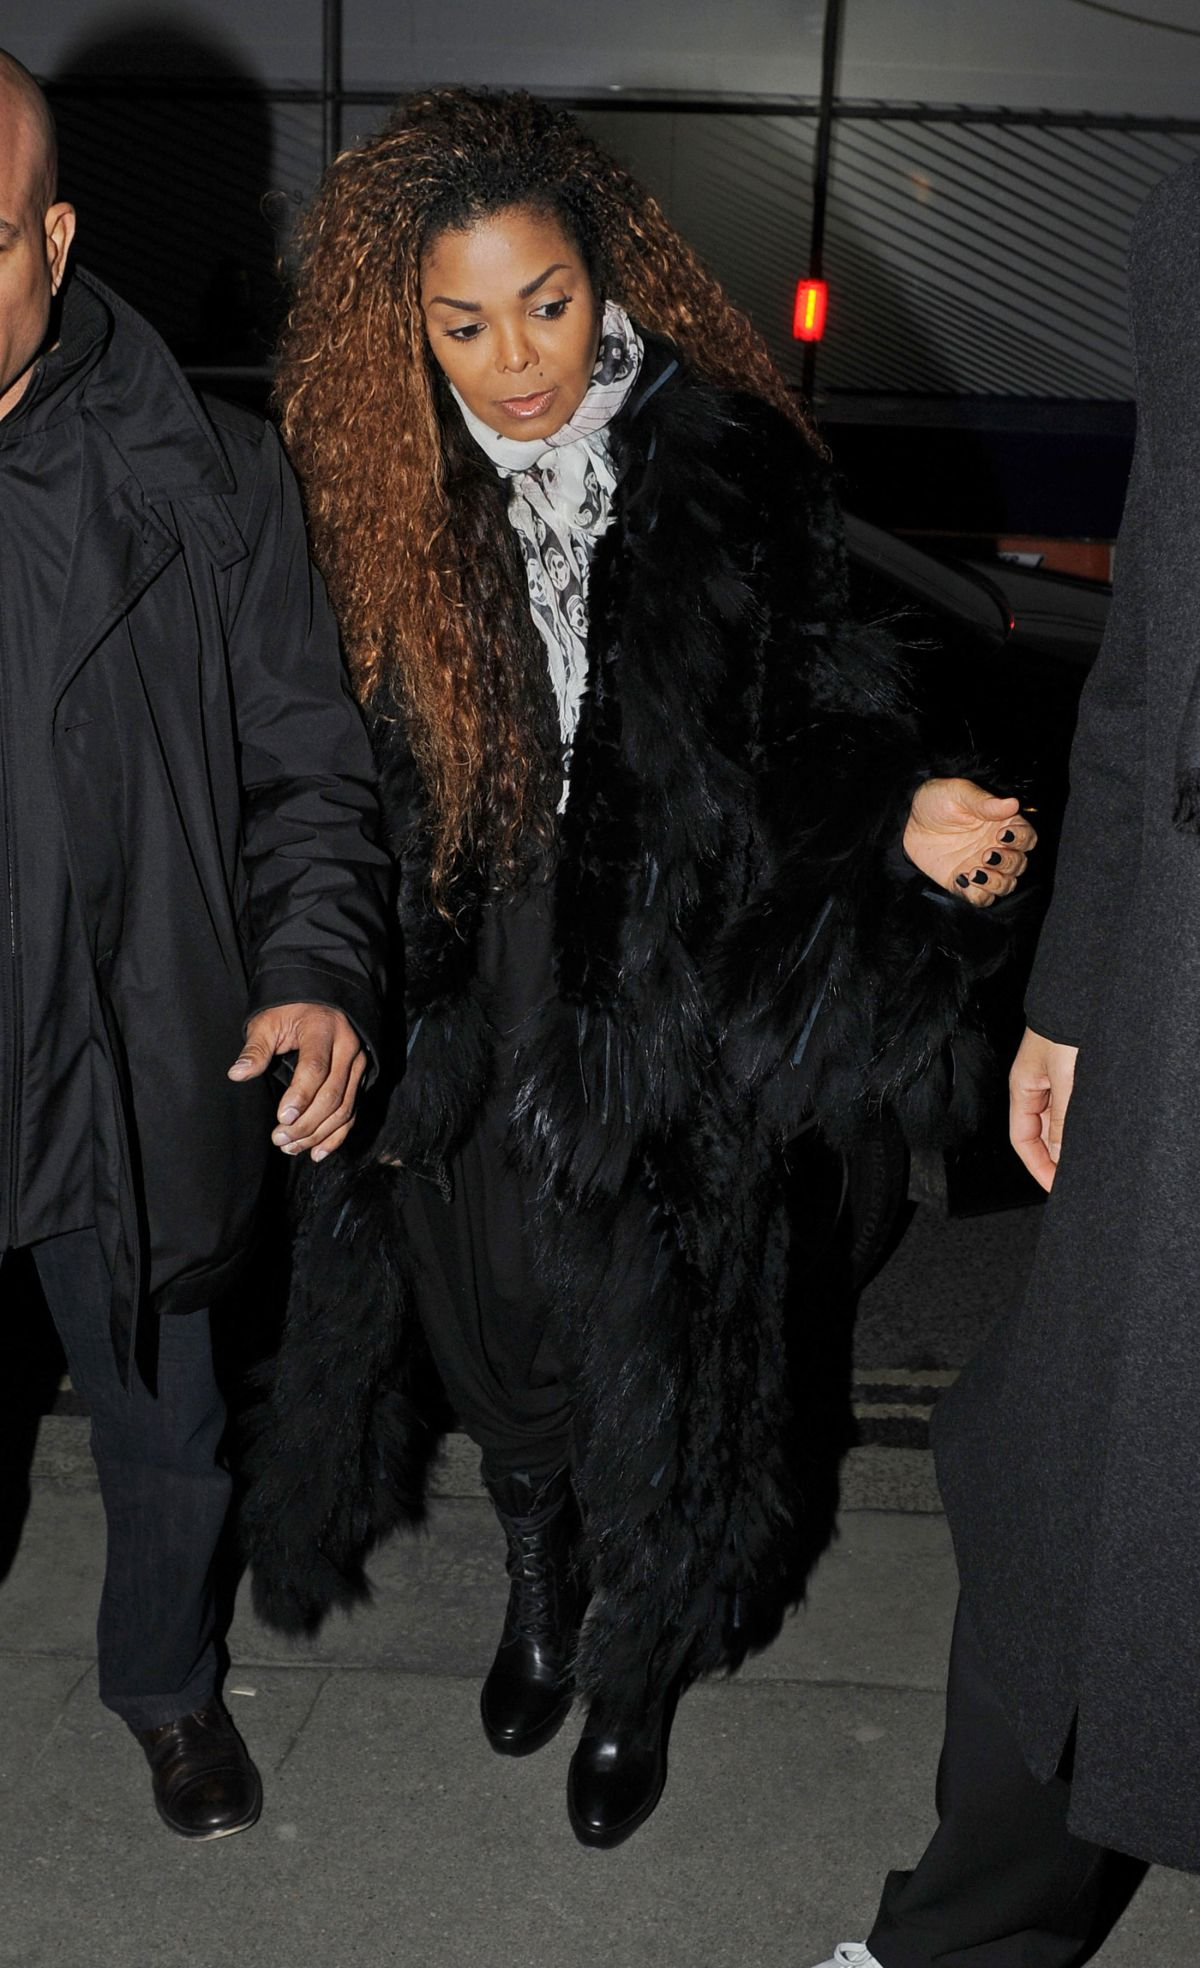 JANET JACKSON at Lazarides Art Gallery in London 02/10/2016